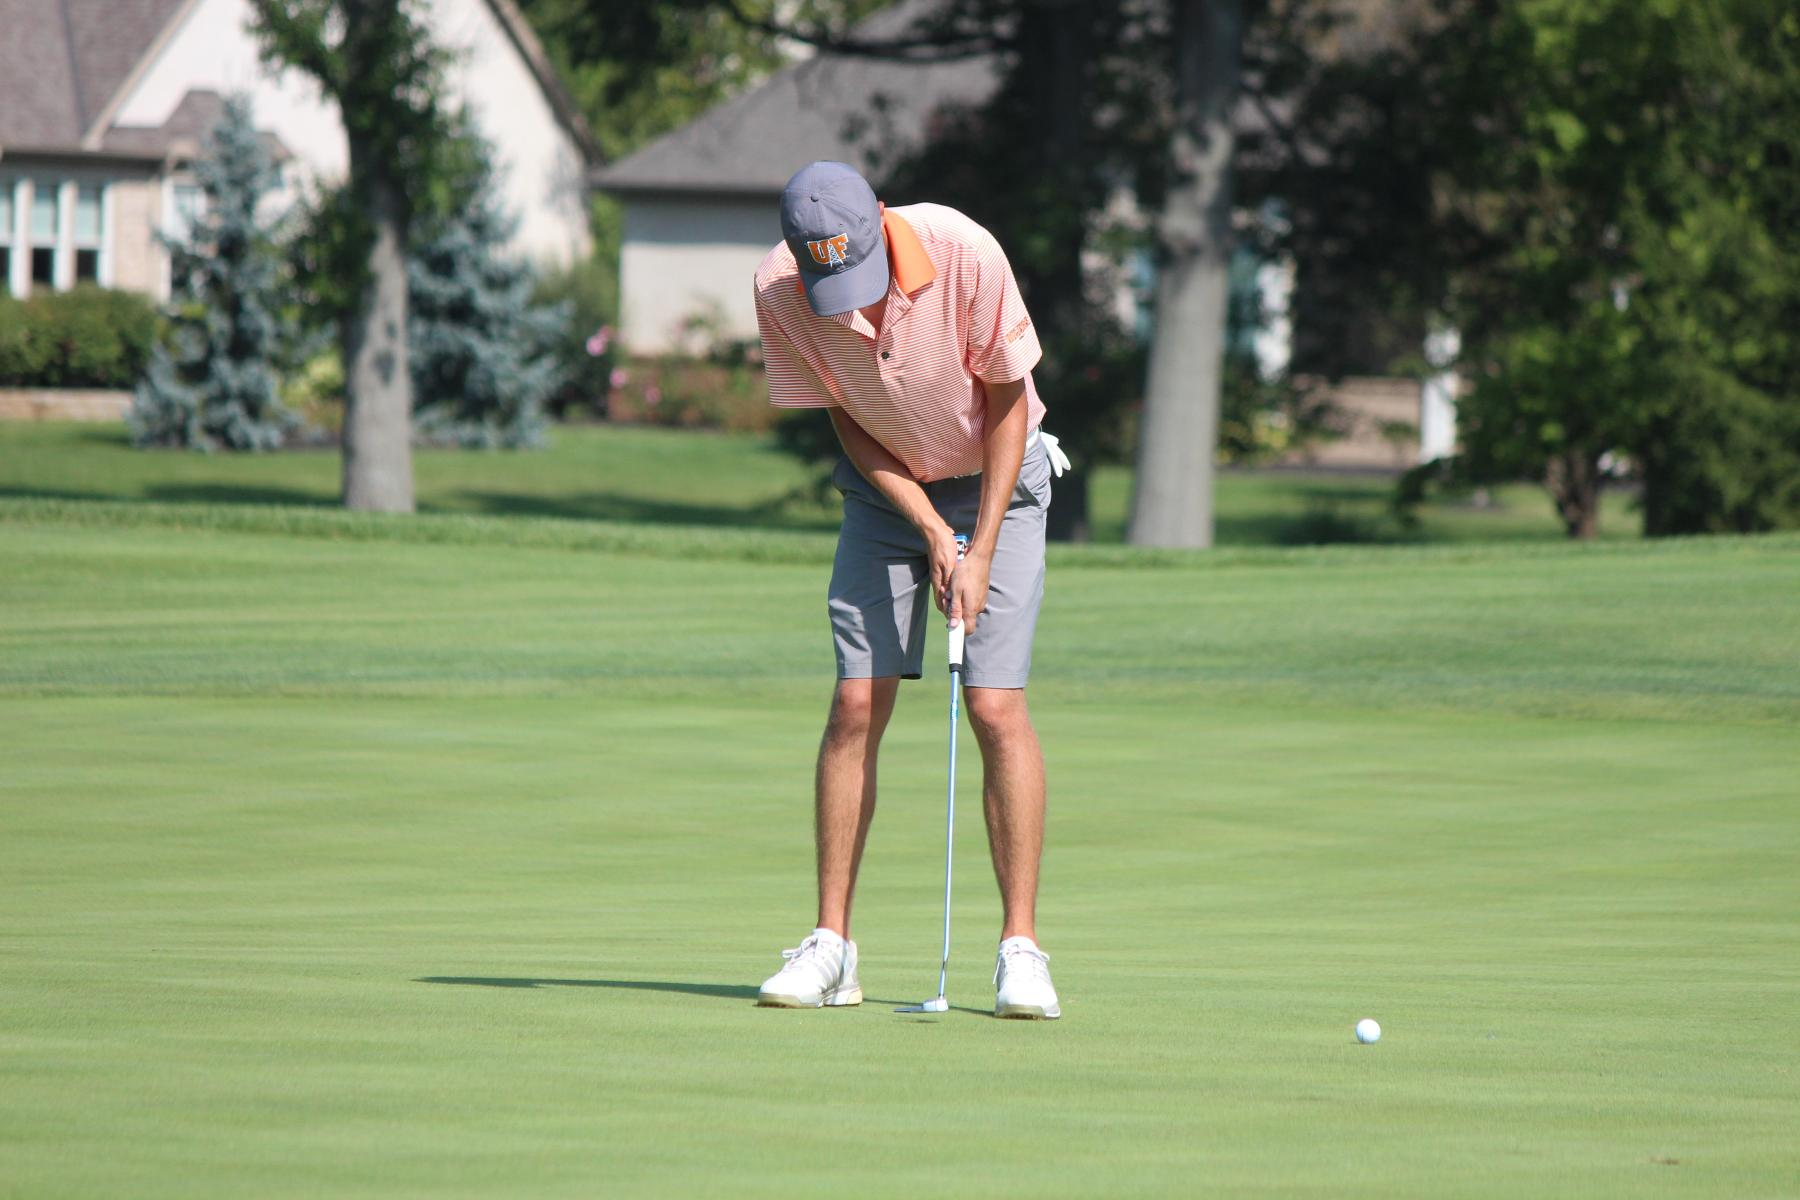 Oilers in 5th at Trevecca